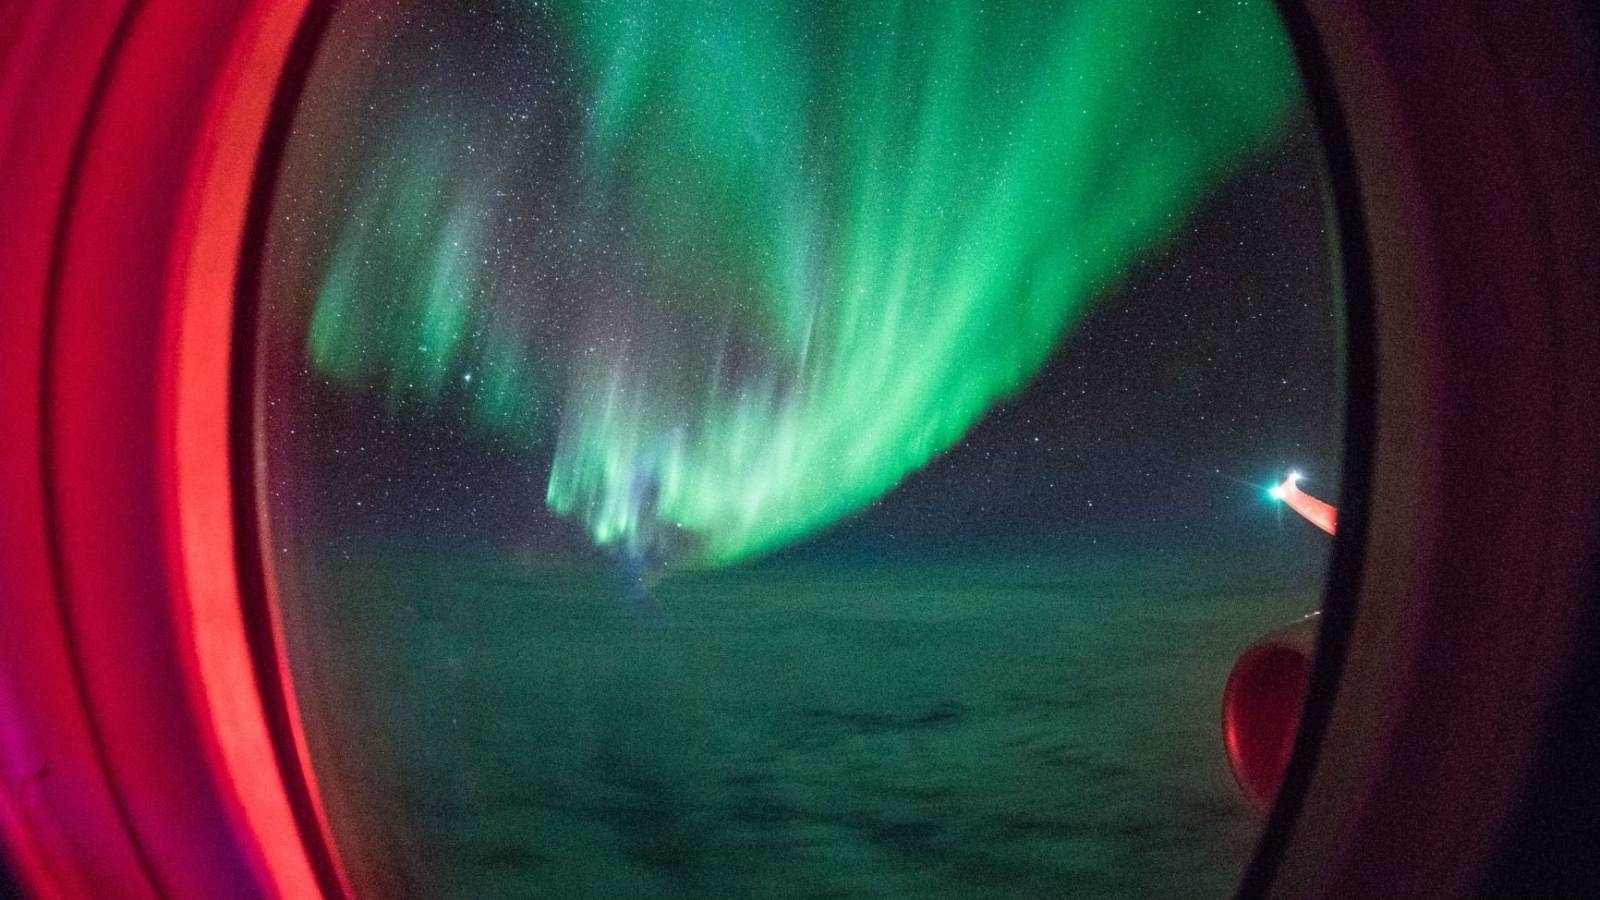 Win two seats on the flight to see the Southern Lights